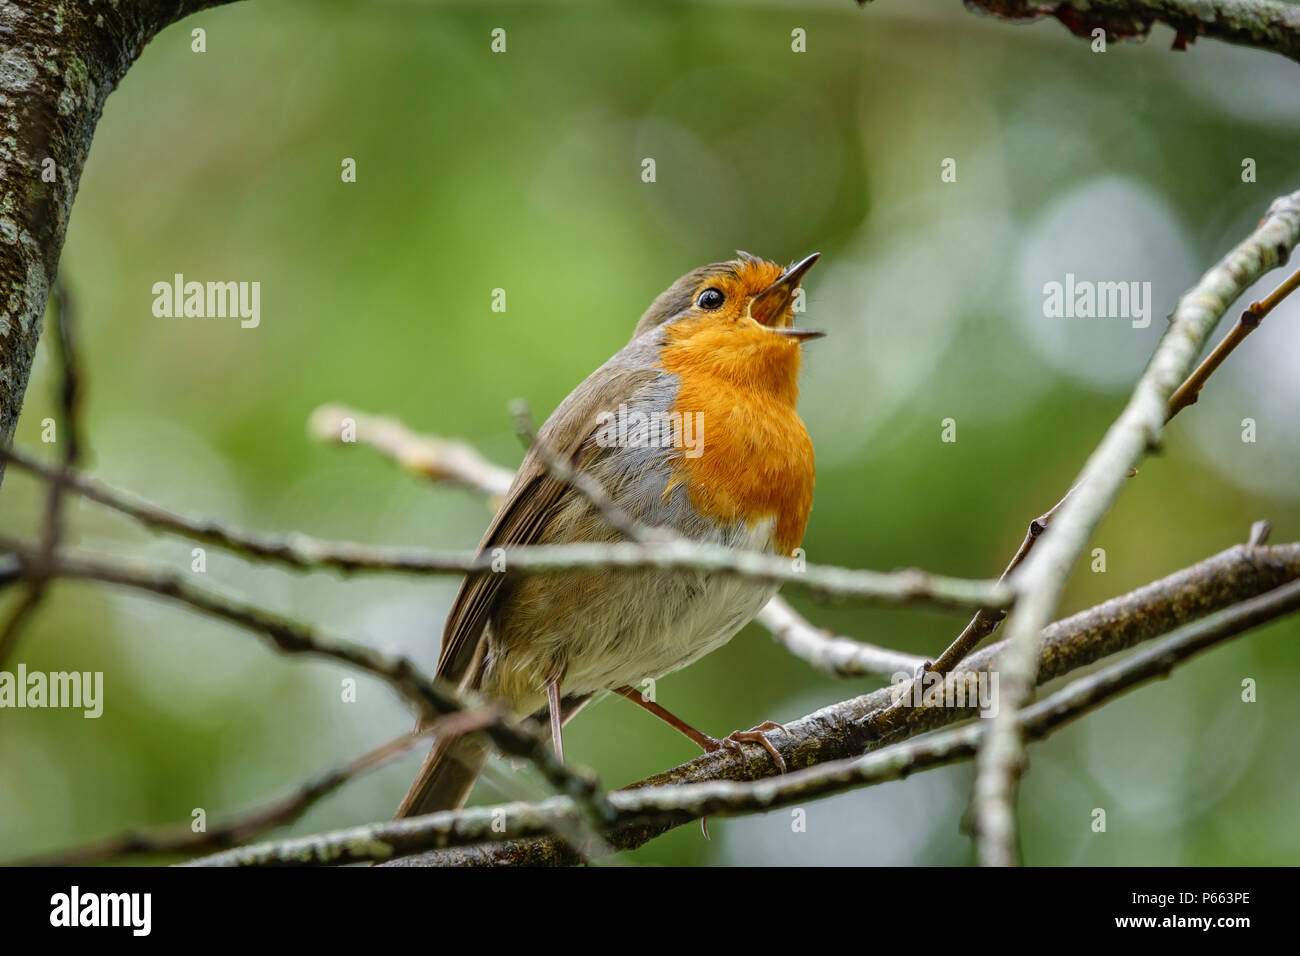 Erithacus rubecula over branch with blurred background - Stock Image